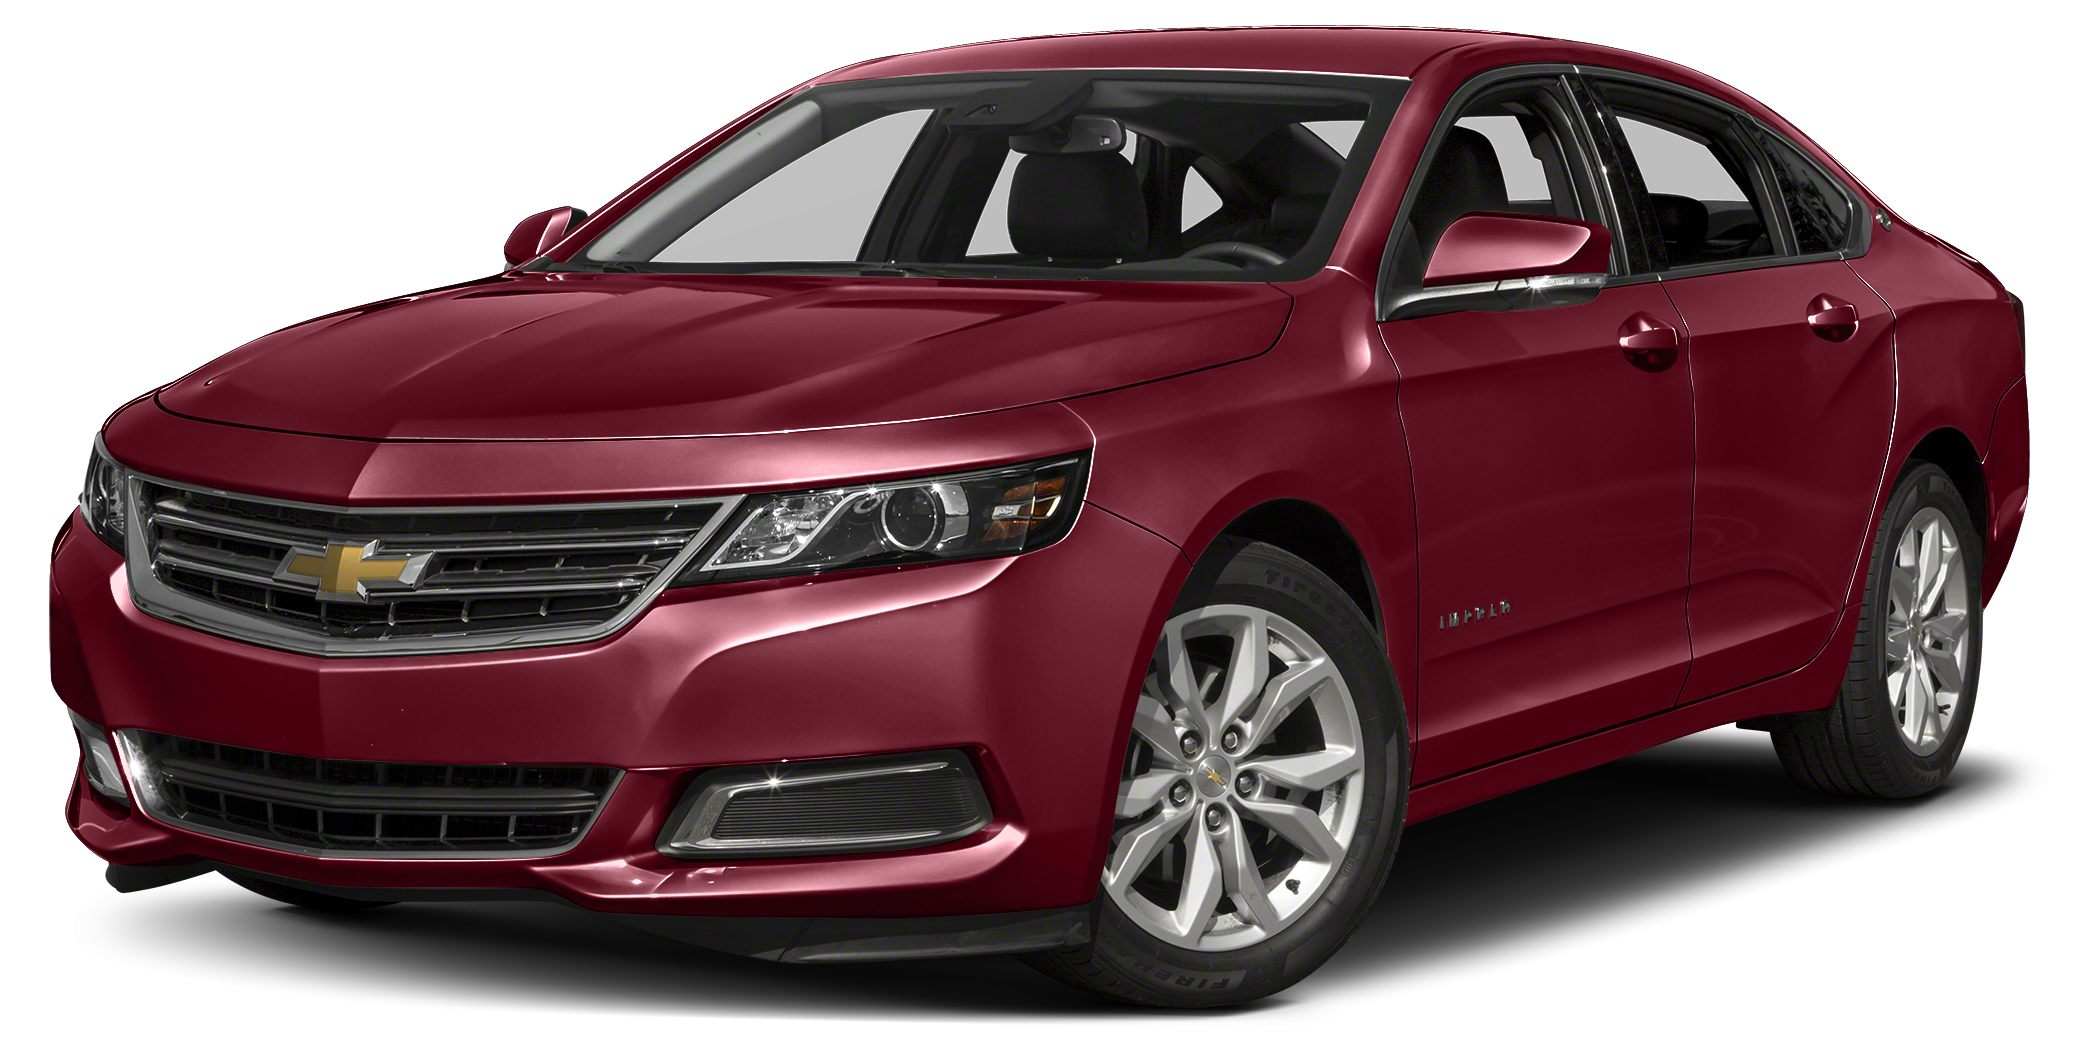 2016 Chevrolet Impala LT w1LT Right car Right price Bayer Motor Company means business Looking